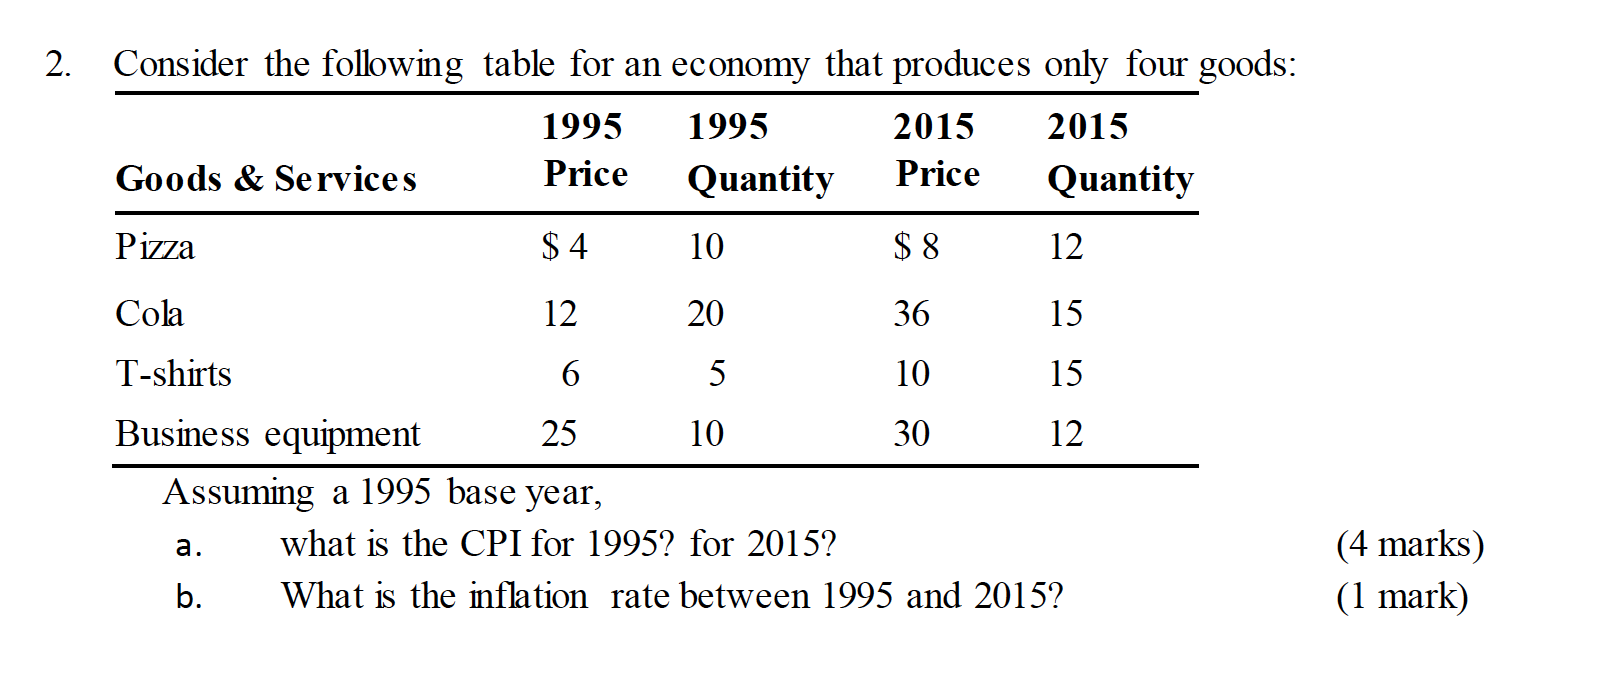 2. Consider the following table for an economy that produces only four goods: 1995 1995 2015 2015 Goods & Services Price Quan